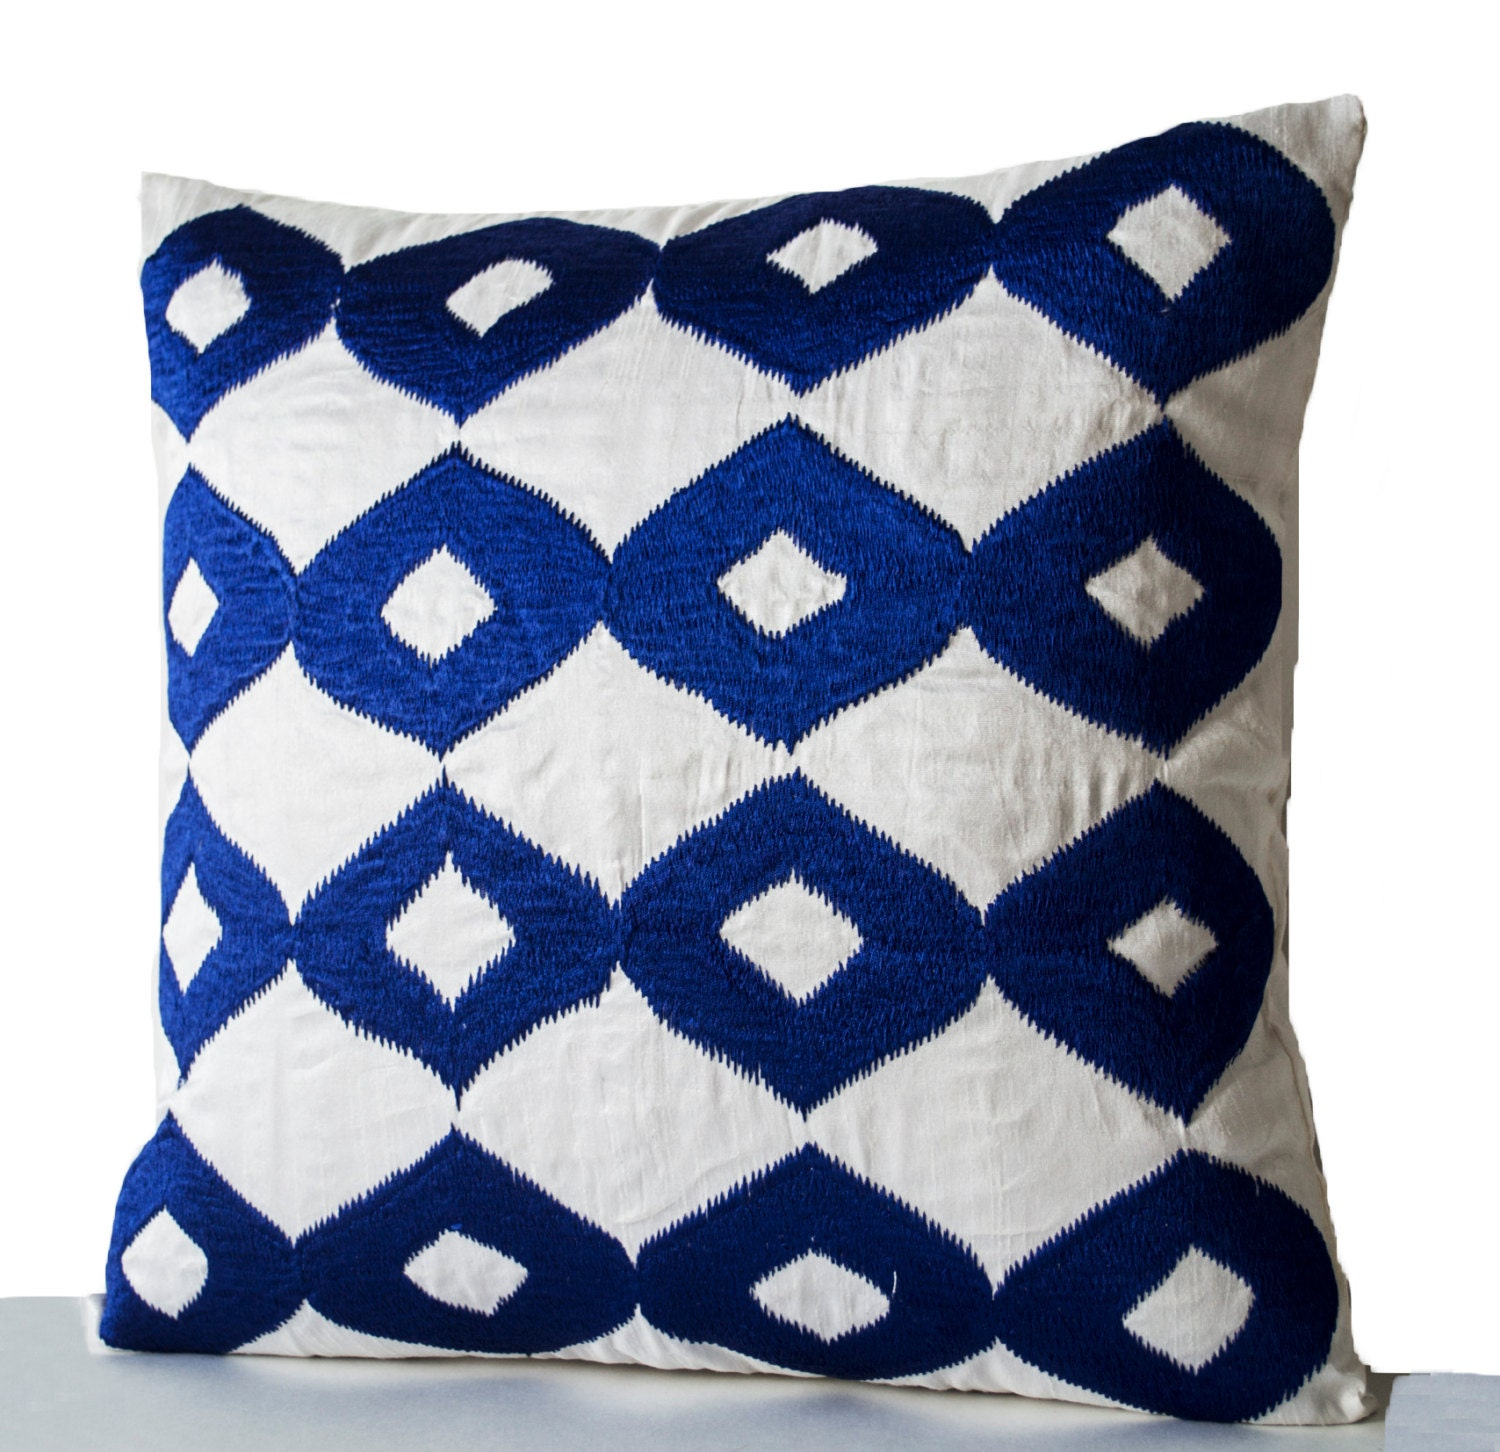 Decorative Pillows For Blue Couch : Decorative Throw Pillow Royal Blue Pillows White Faux Silk